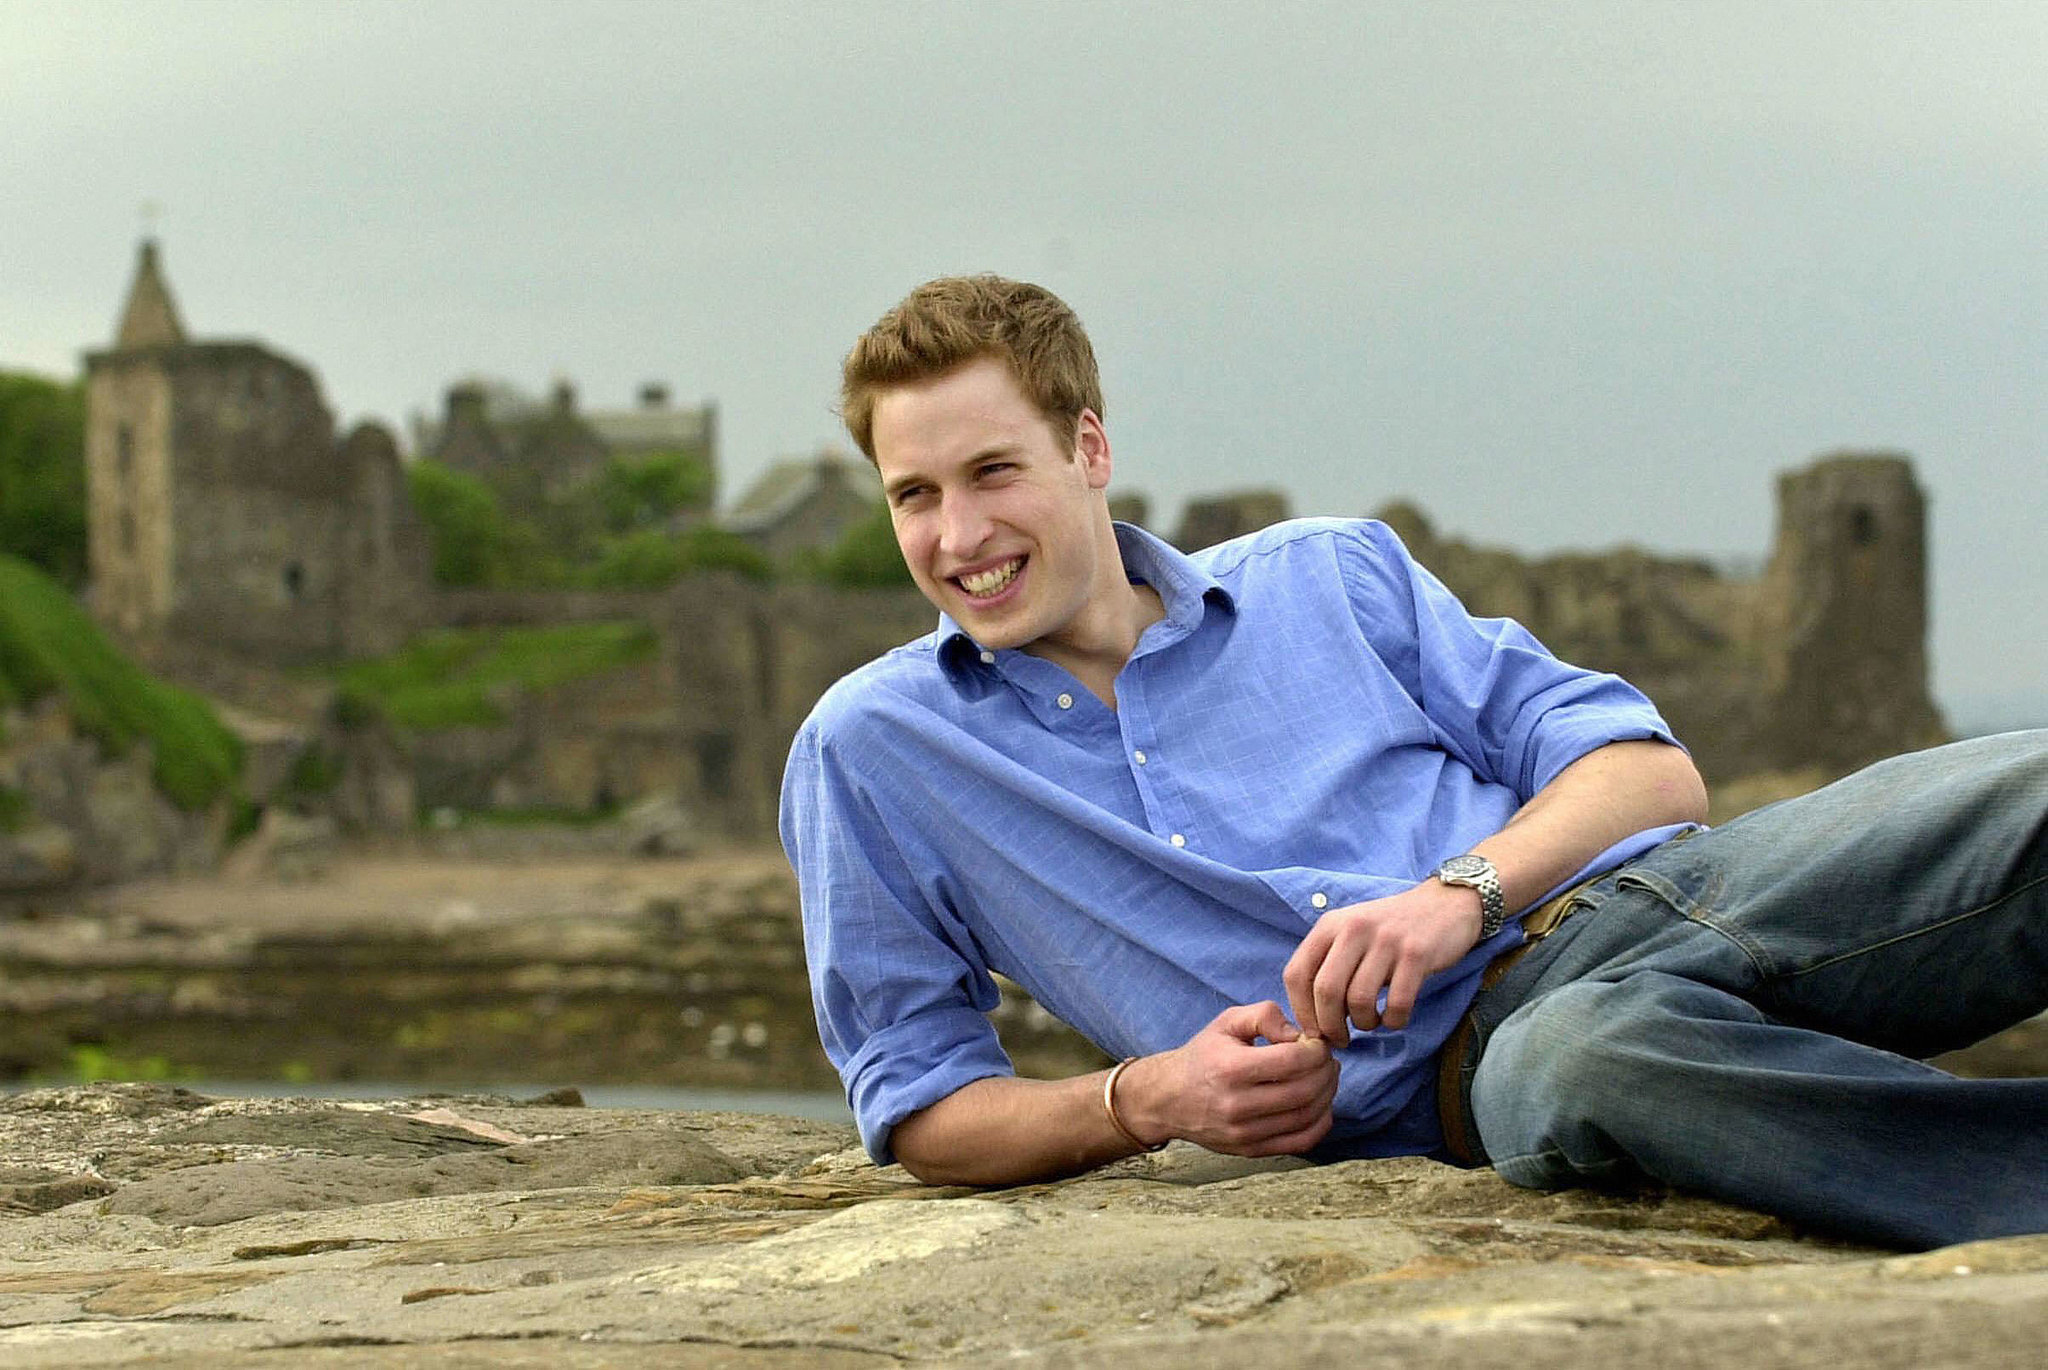 Just your average prince, posing on the sand in front of some ruins.